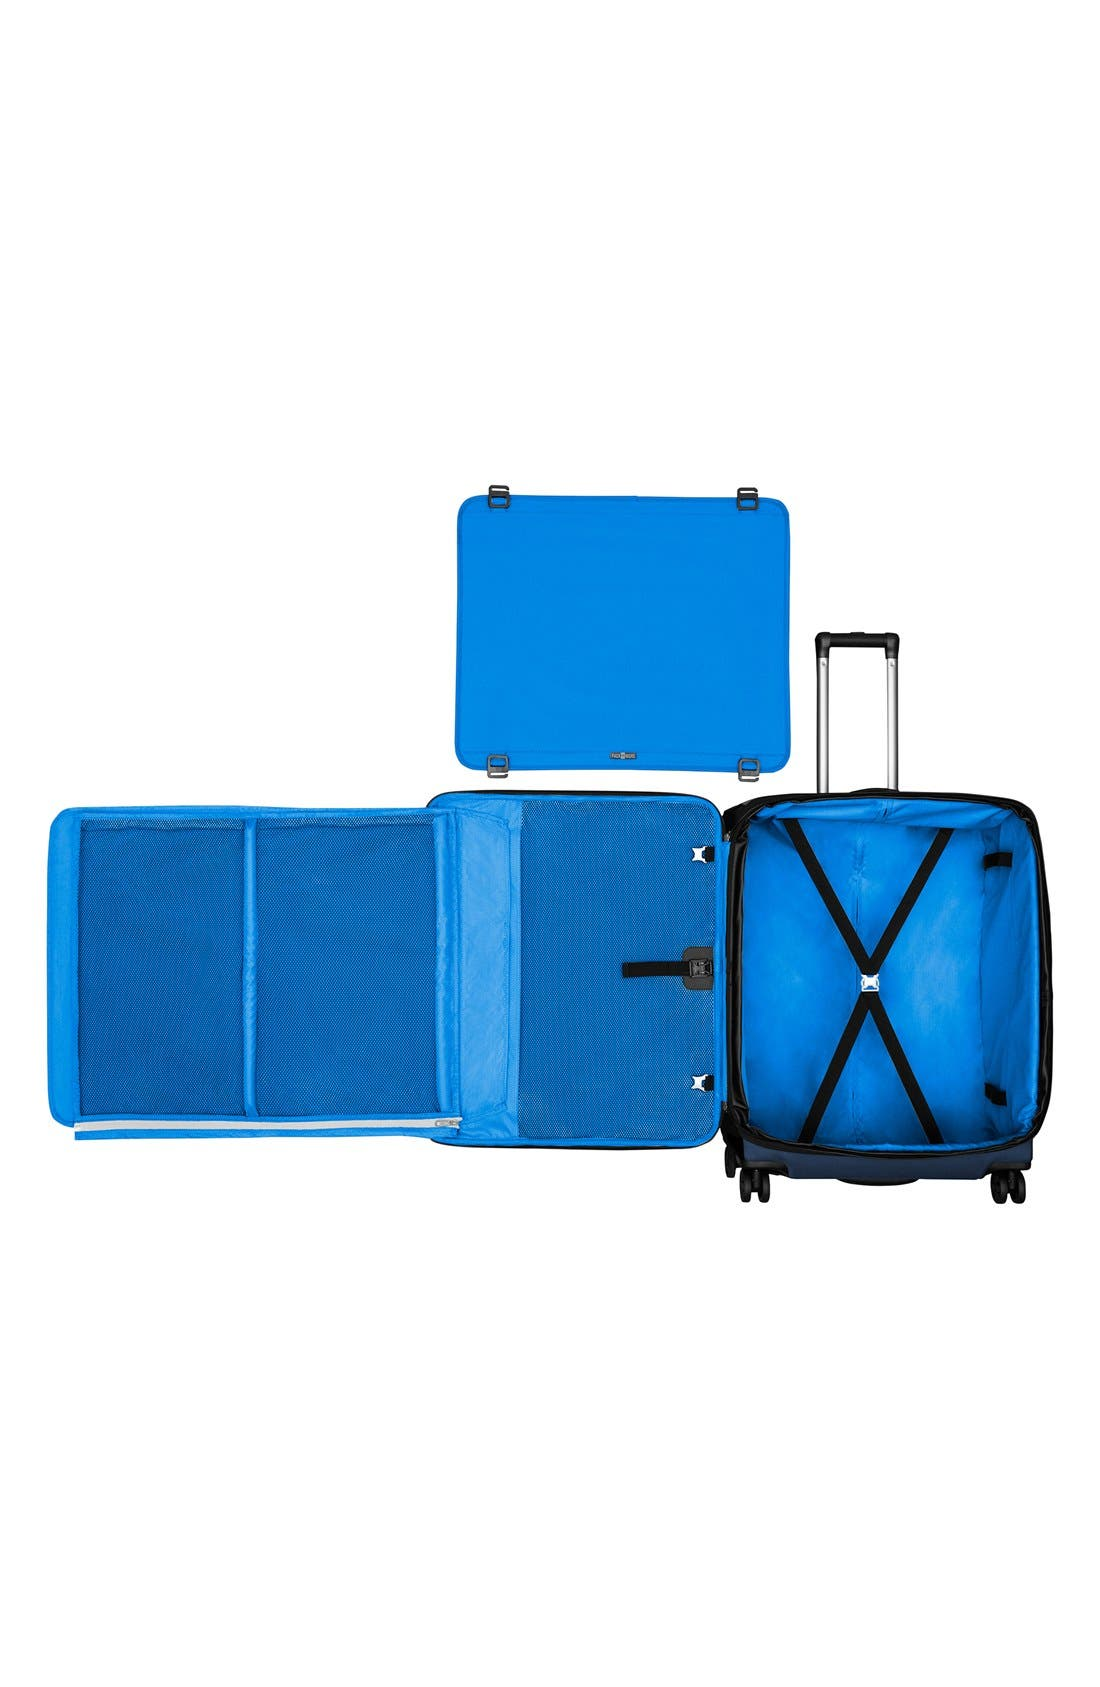 WT 5.0 Dual Caster Wheeled 27-Inch Packing Case,                             Alternate thumbnail 4, color,                             420